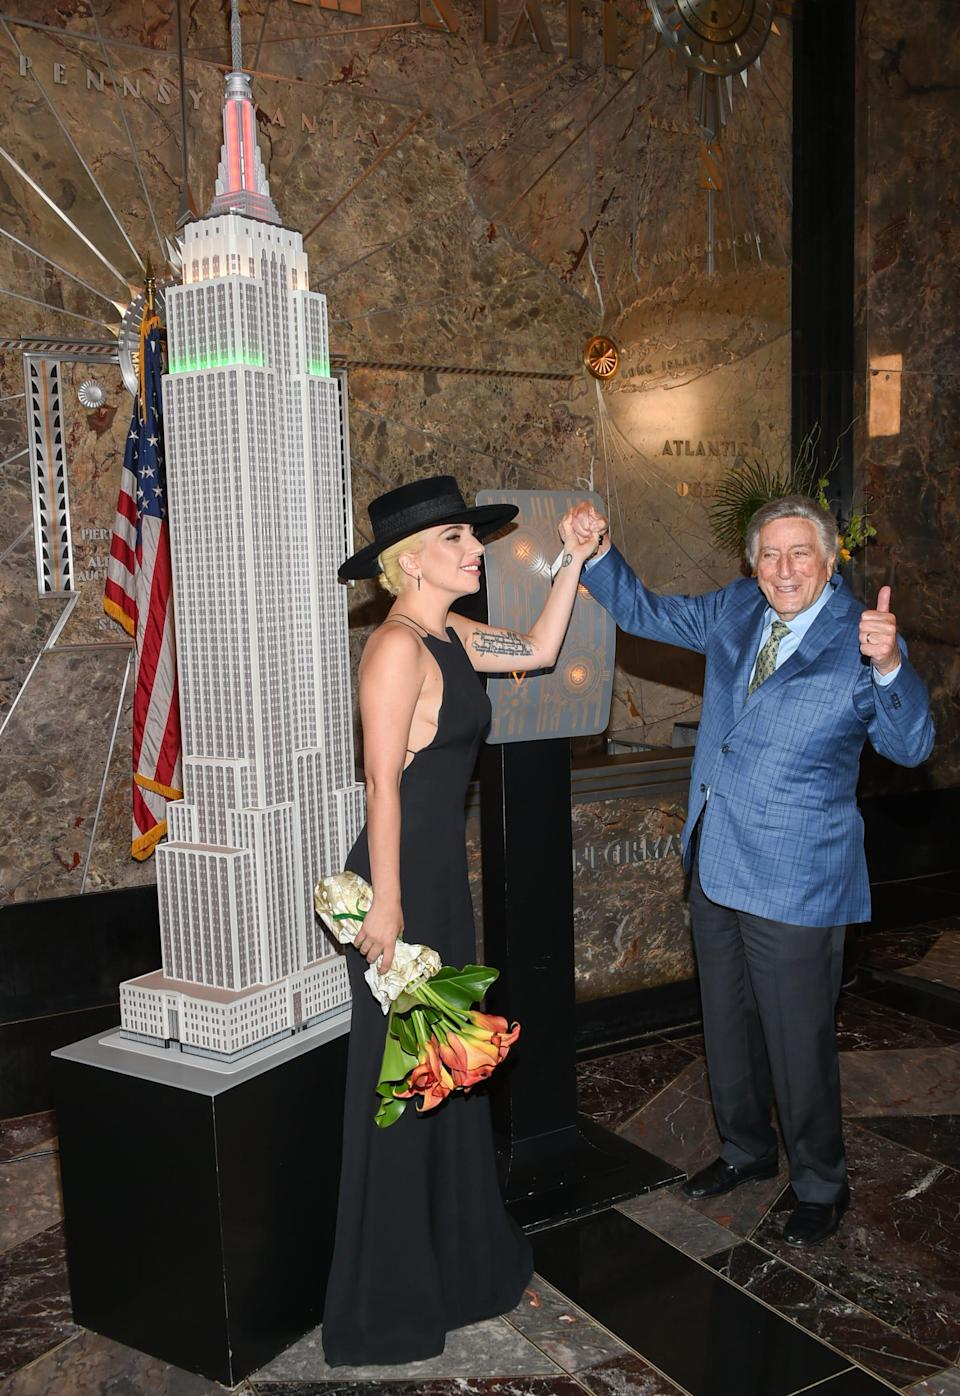 Singers Tony Bennett, right, and Lady Gaga appear at a ceremony to light the Empire State Building in honor of Bennett's 90th birthday on Wednesday, Aug. 3, 2016, in New York.